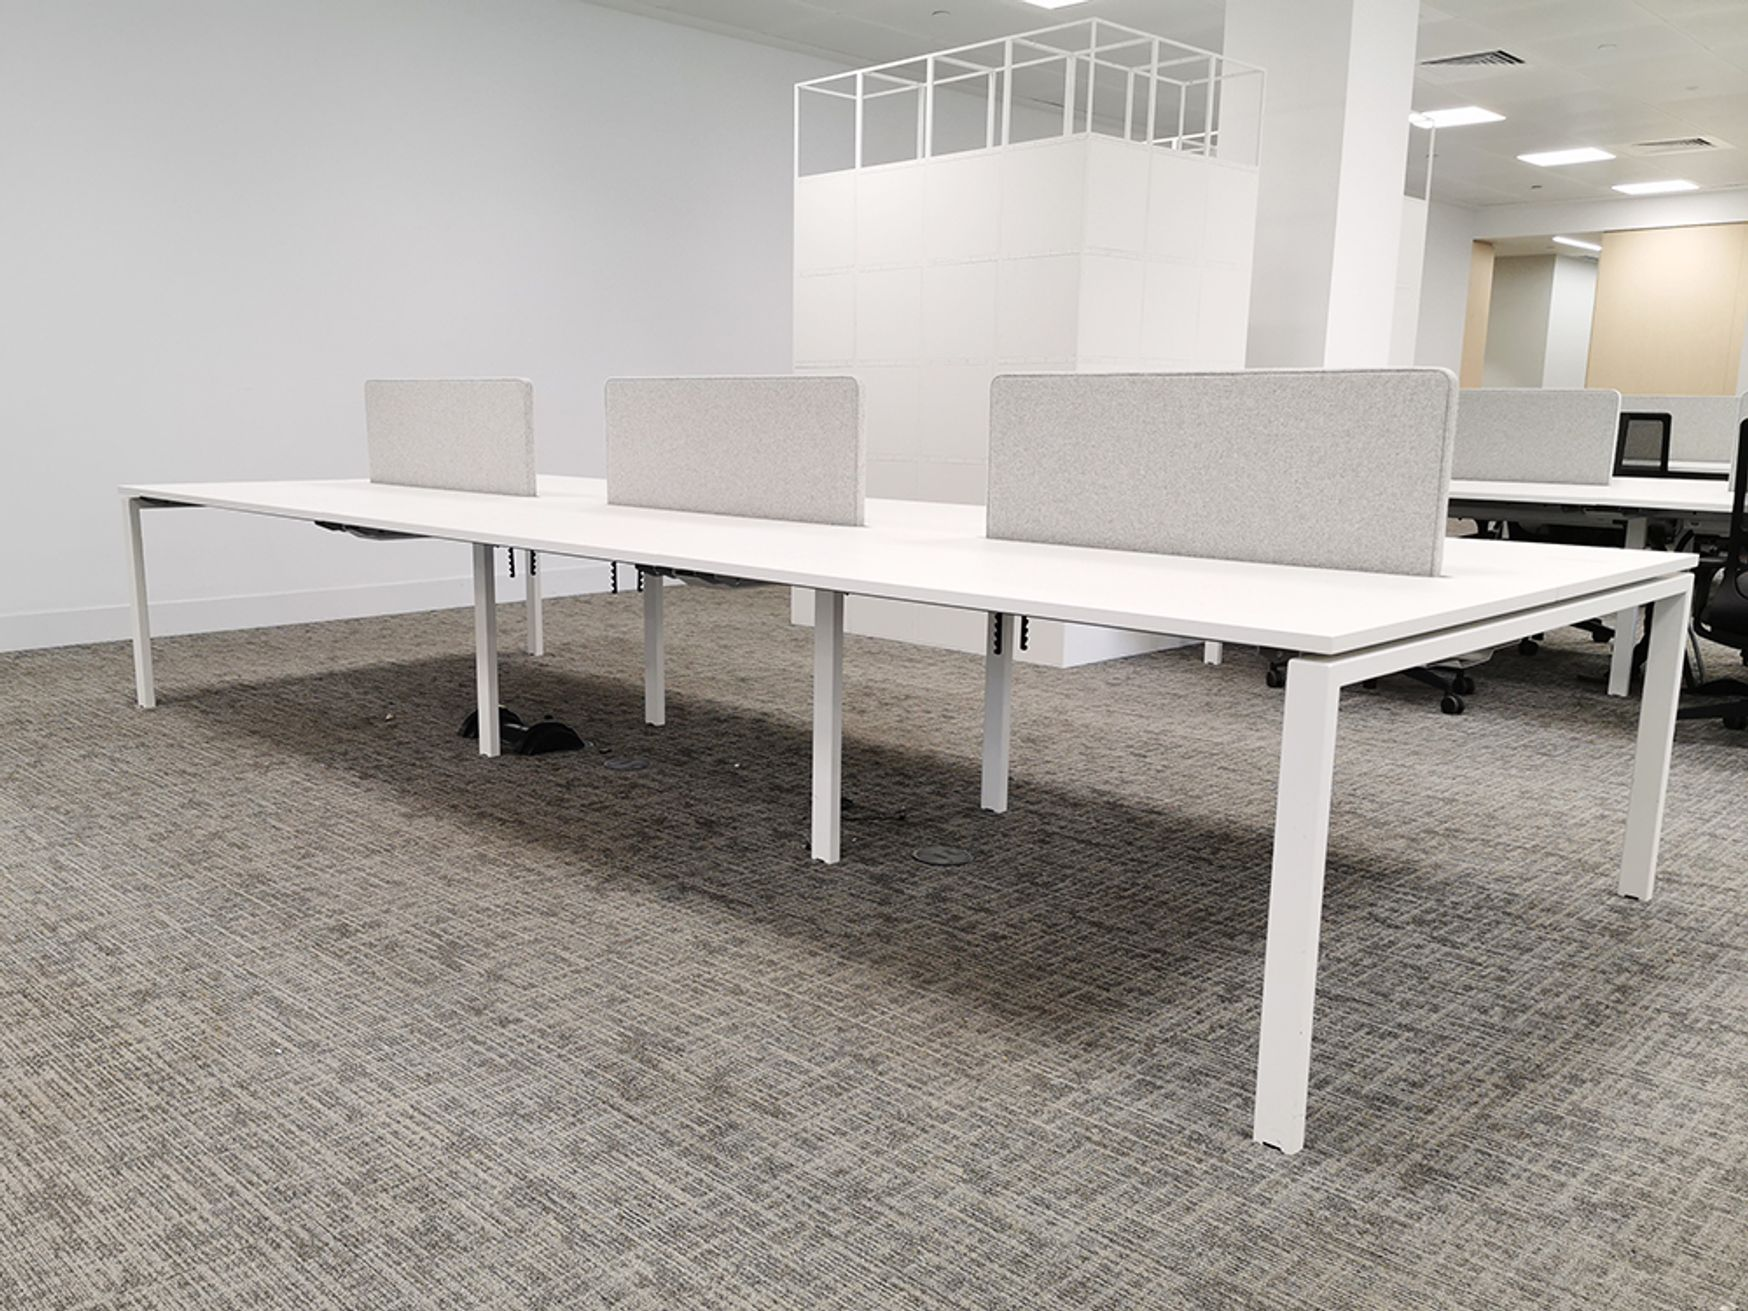 Used 1400mm Task Systems 'Team' White Bench Desks